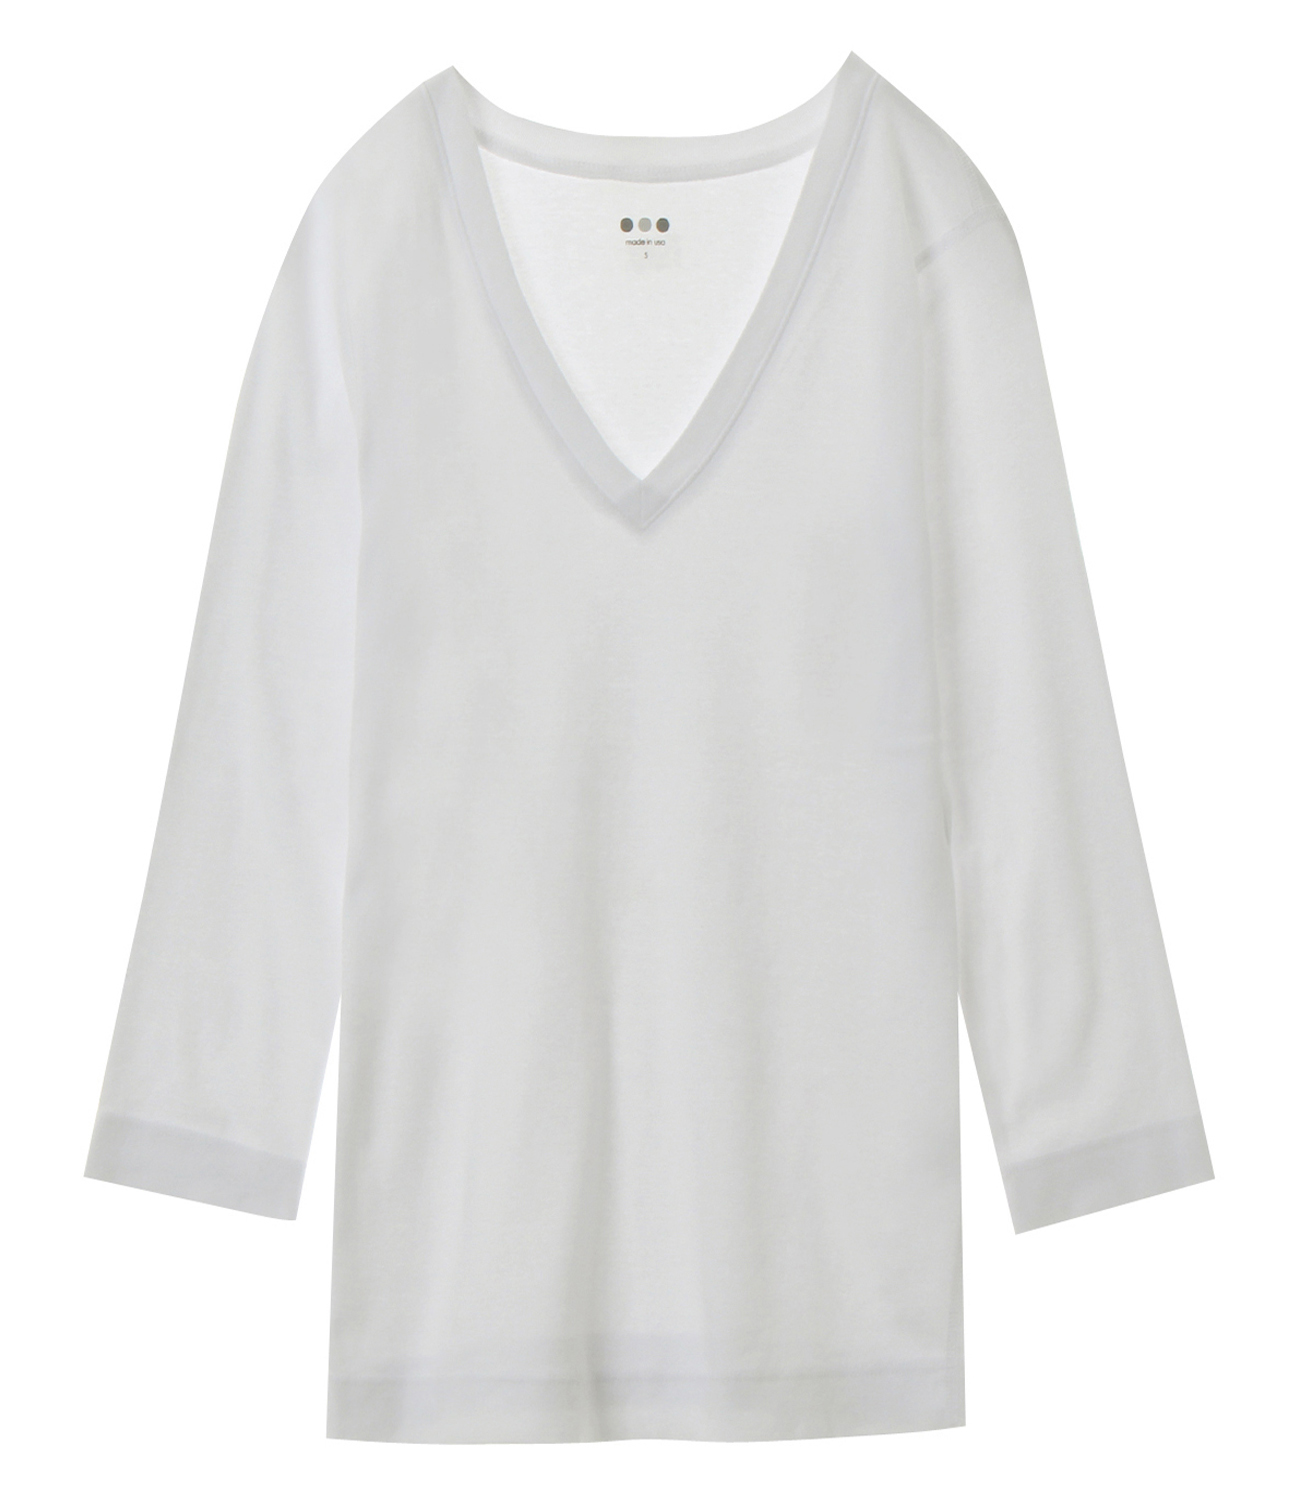 cotton knits 3/4 v-neck nicole 詳細画像 white 1